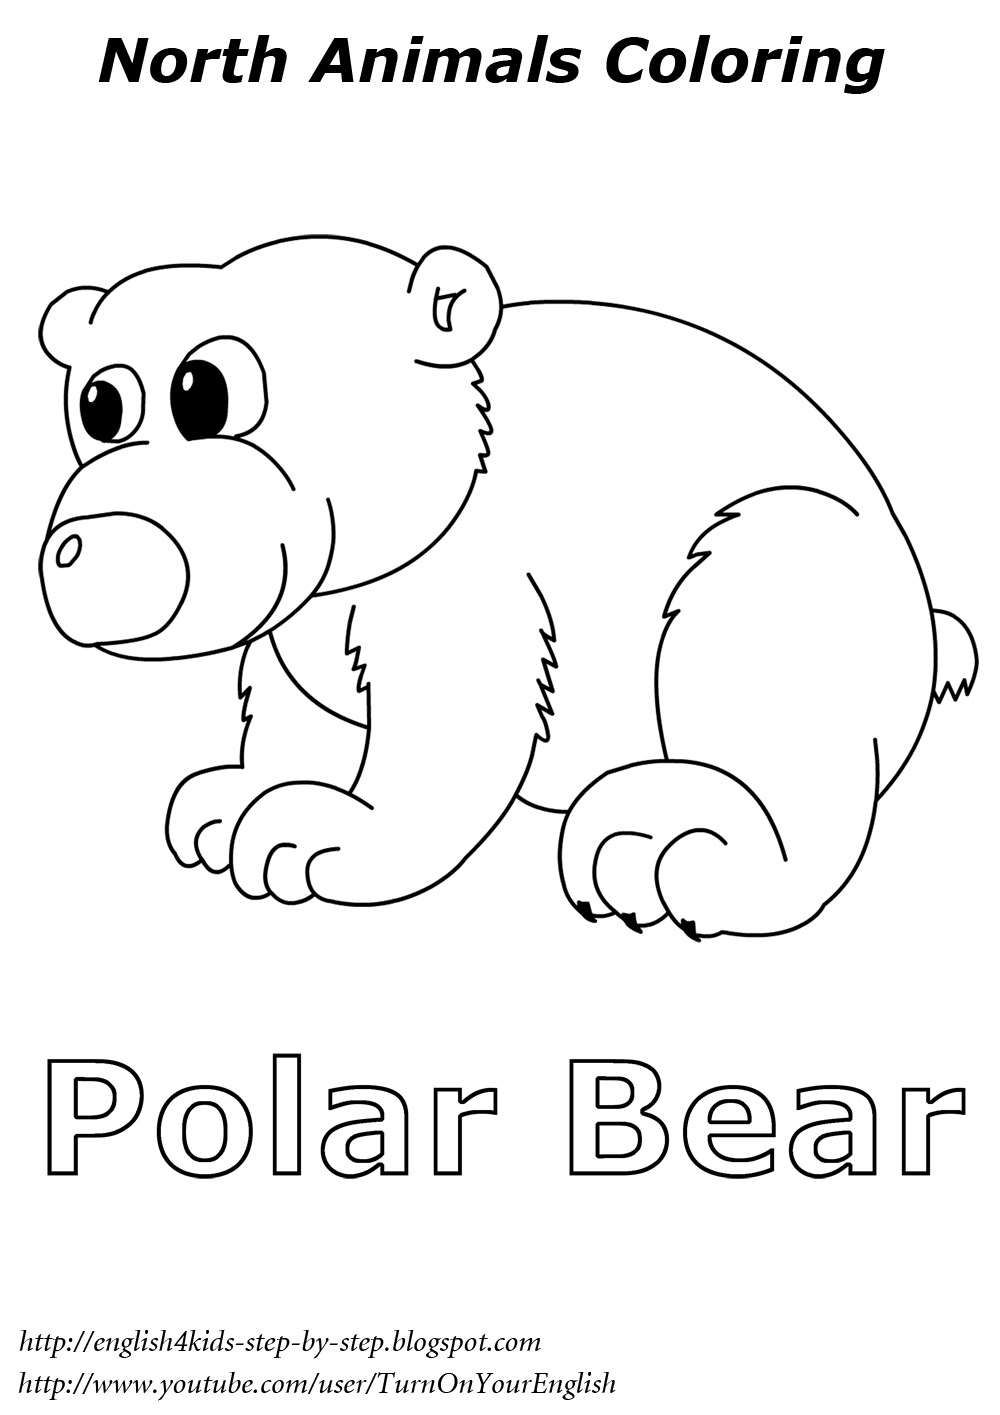 arctic animal coloring pages arctic animals coloring pages handipoints clipart best coloring animal pages arctic